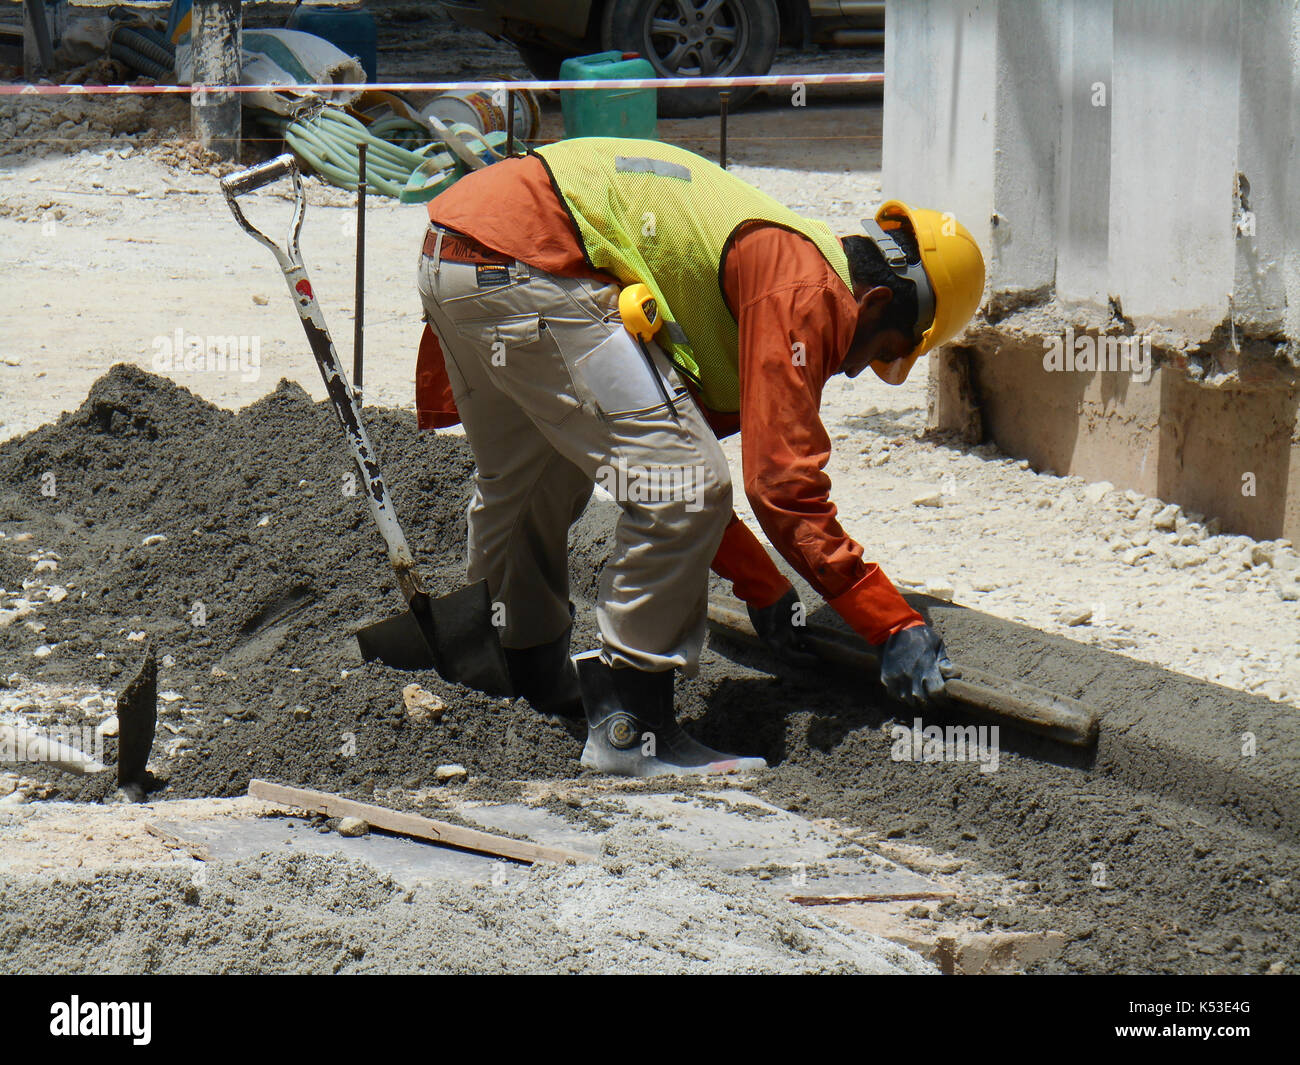 SEREMBAN, MALAYSIA -MAY 16, 2017: Construction workers fabricating concrete road kerb at the construction site. They are using in situ method and made - Stock Image